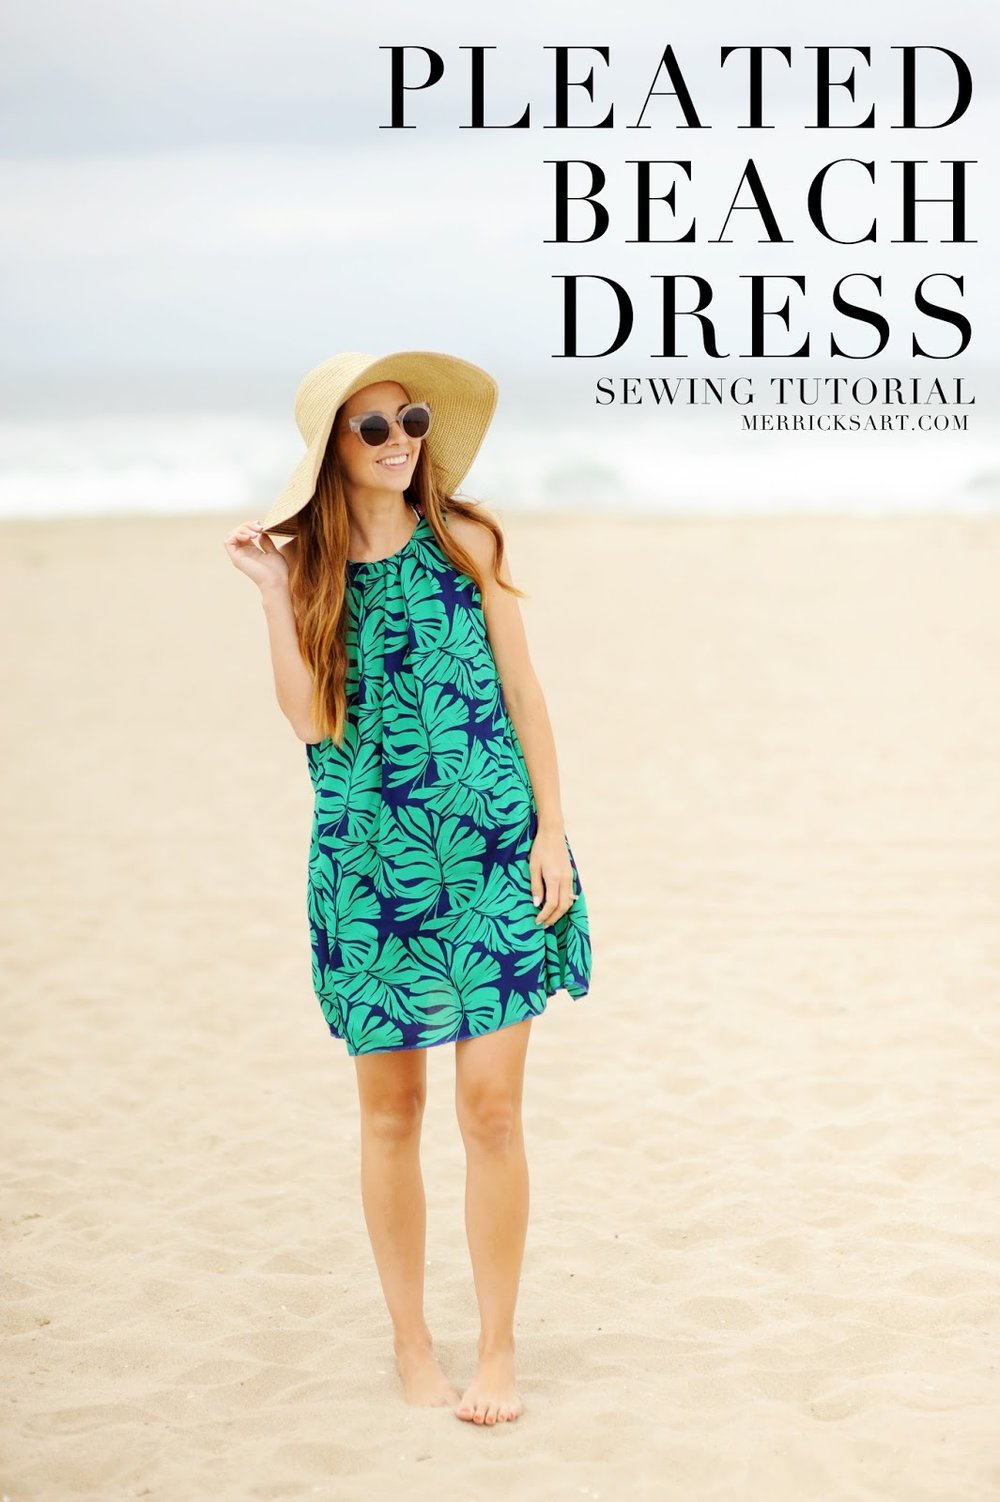 PLEATED BEACH DRESS From Merricks Art